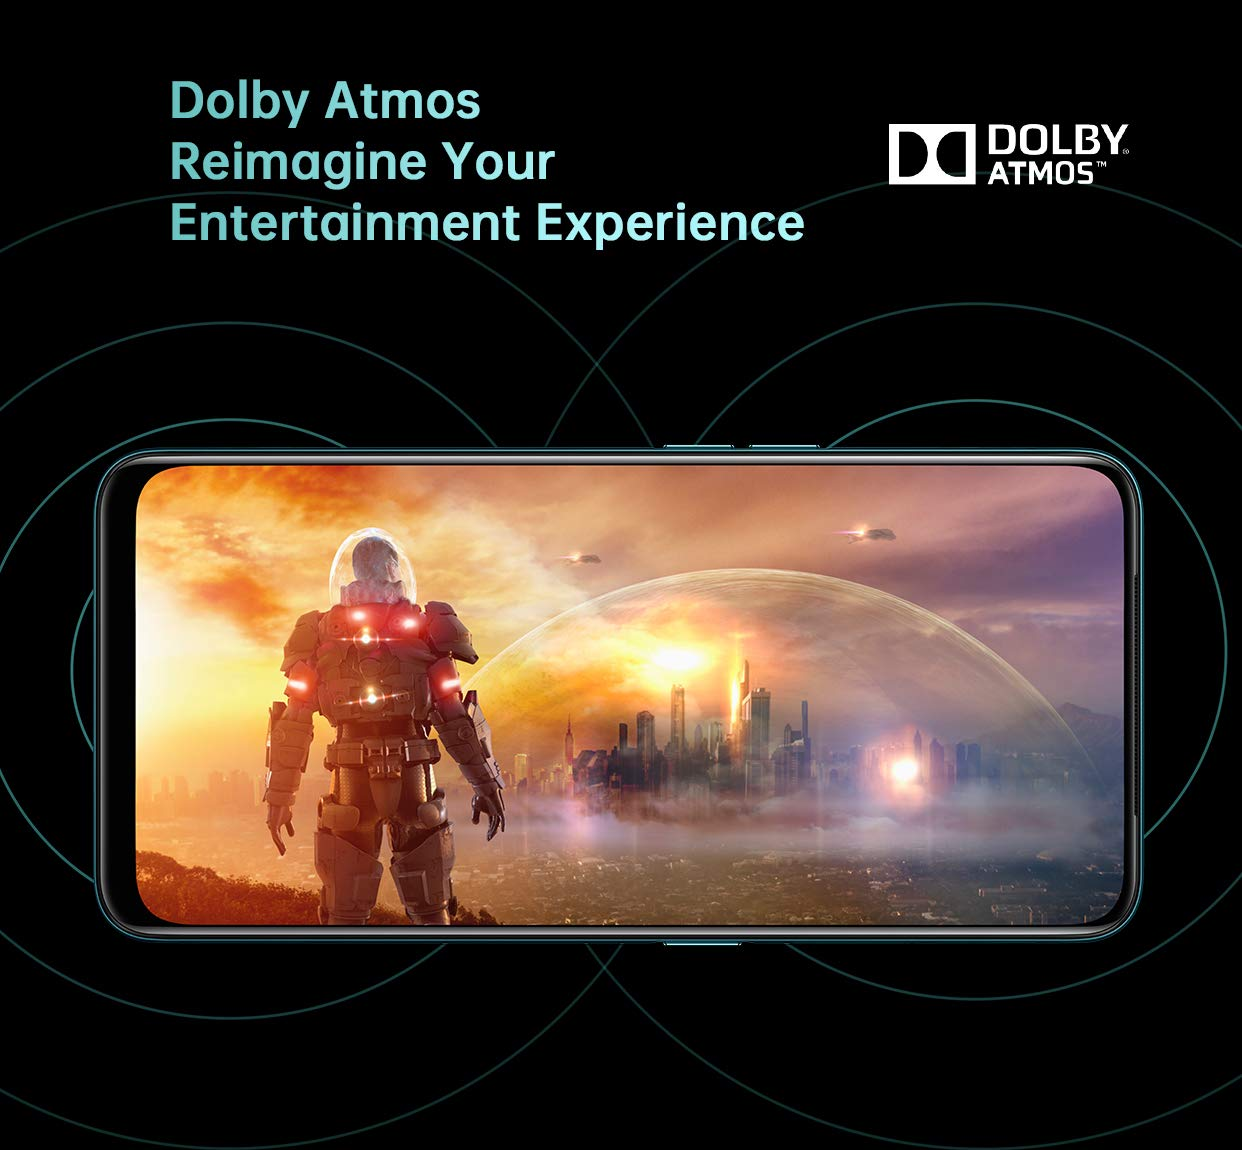 Dolby Atmos audio, VOOC 3.0 fast charging, and BT 5.0 make this an all-rounder